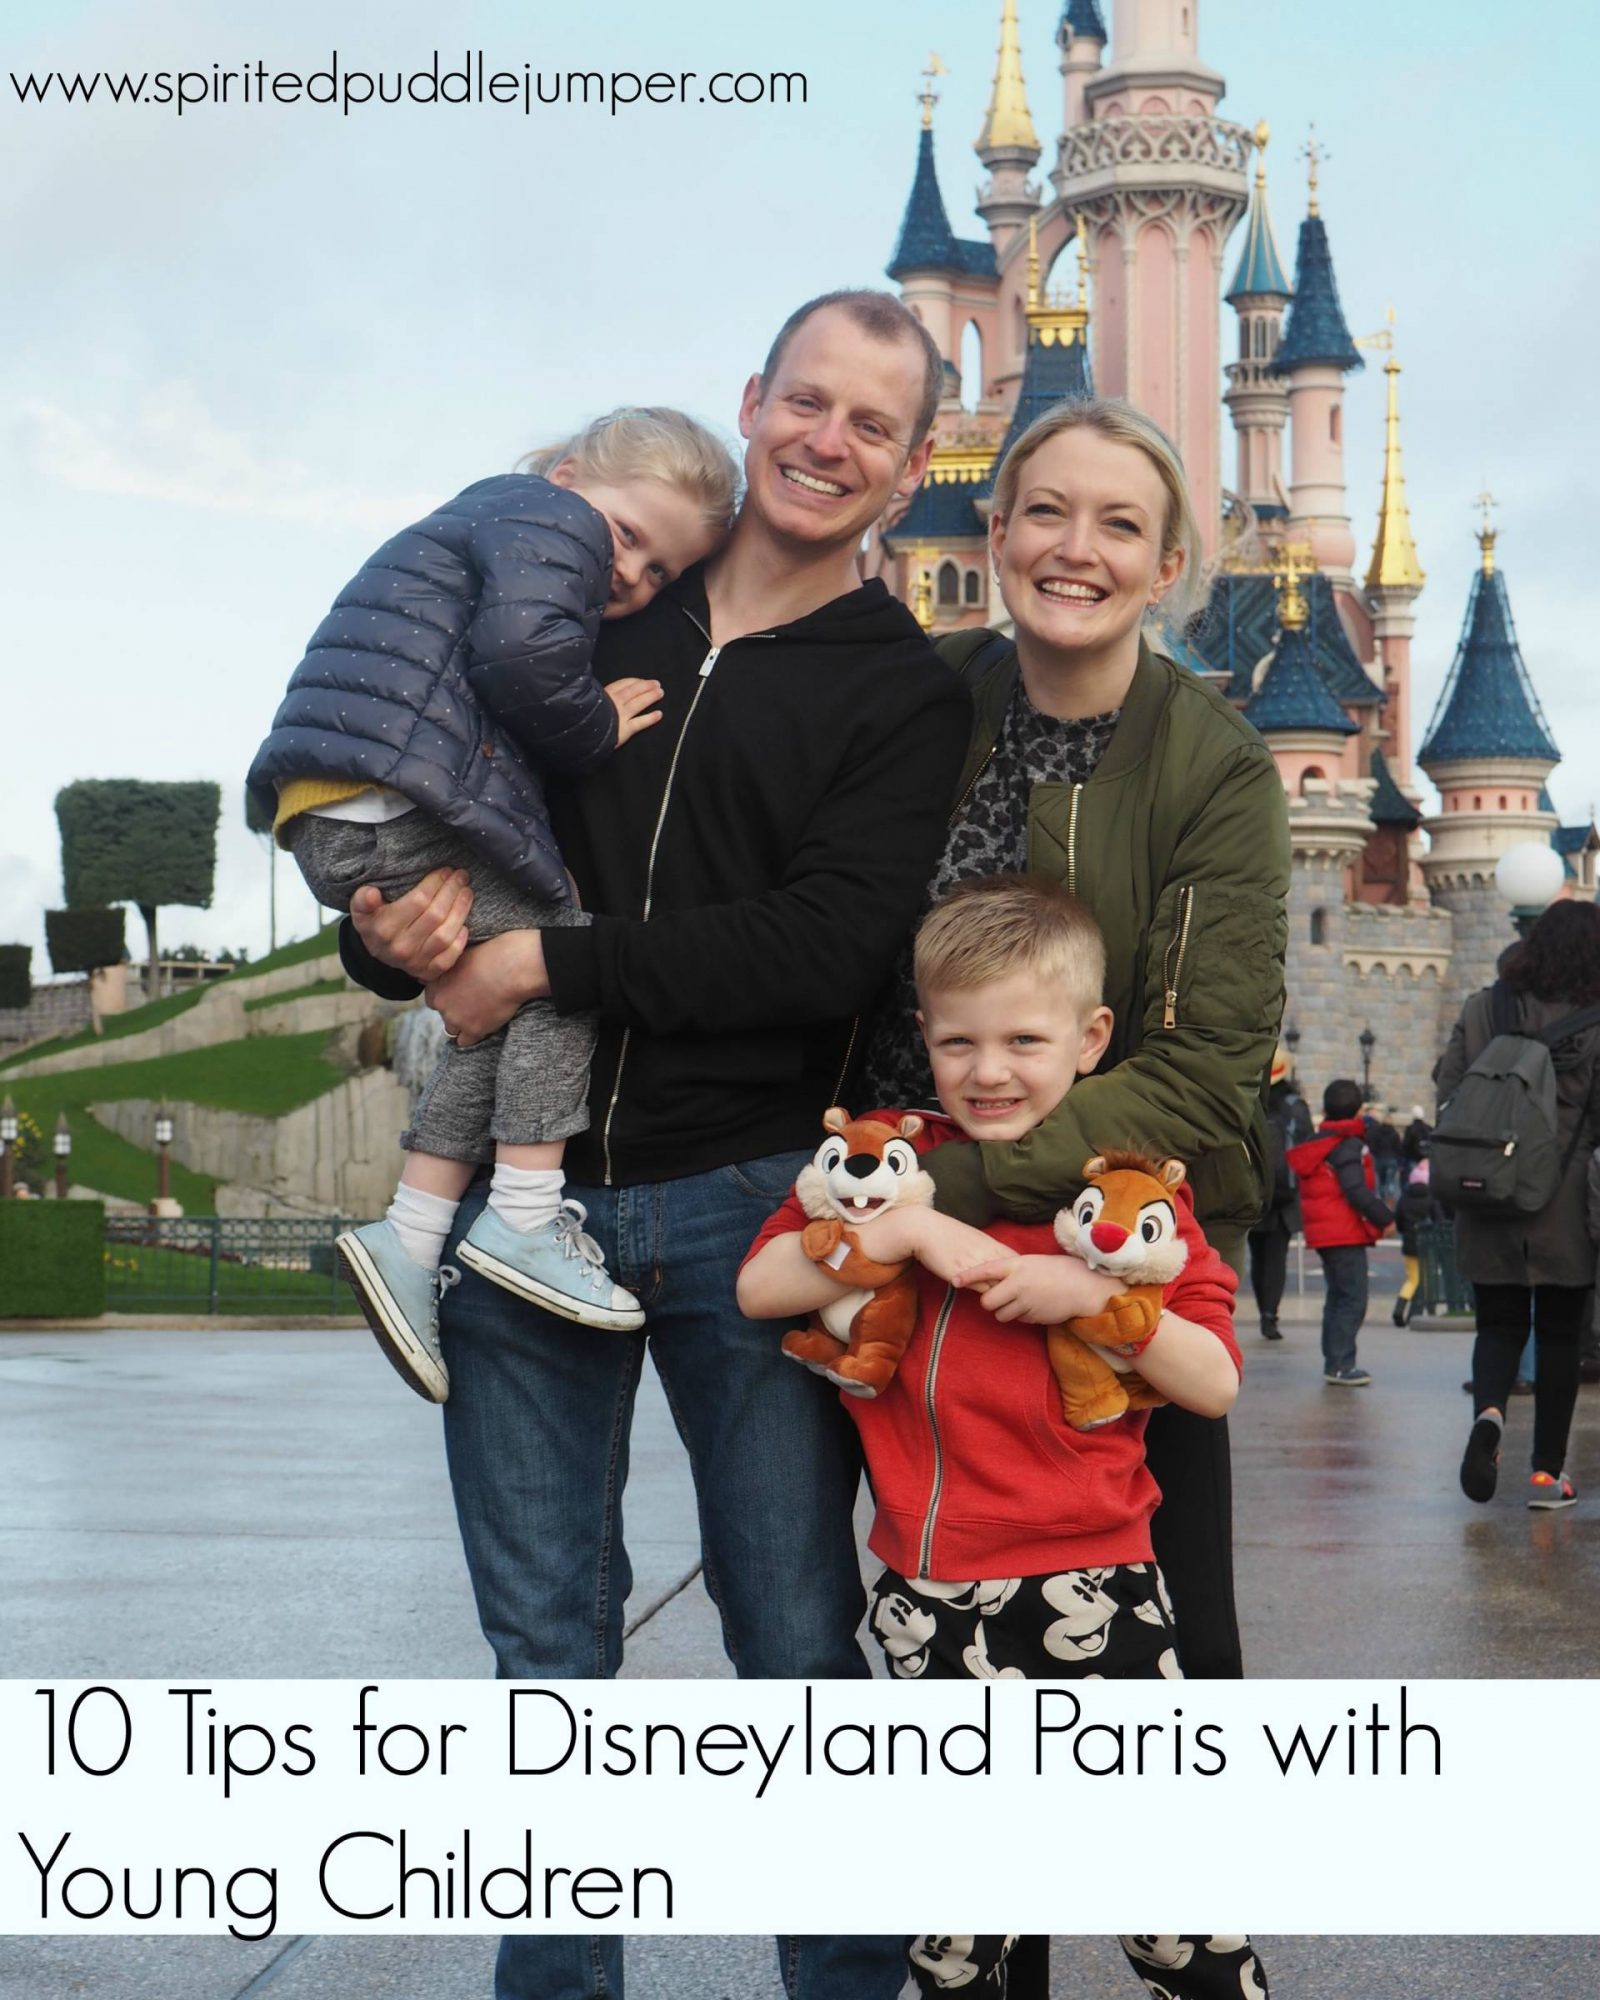 10 Tips for Disneyland Paris with young children